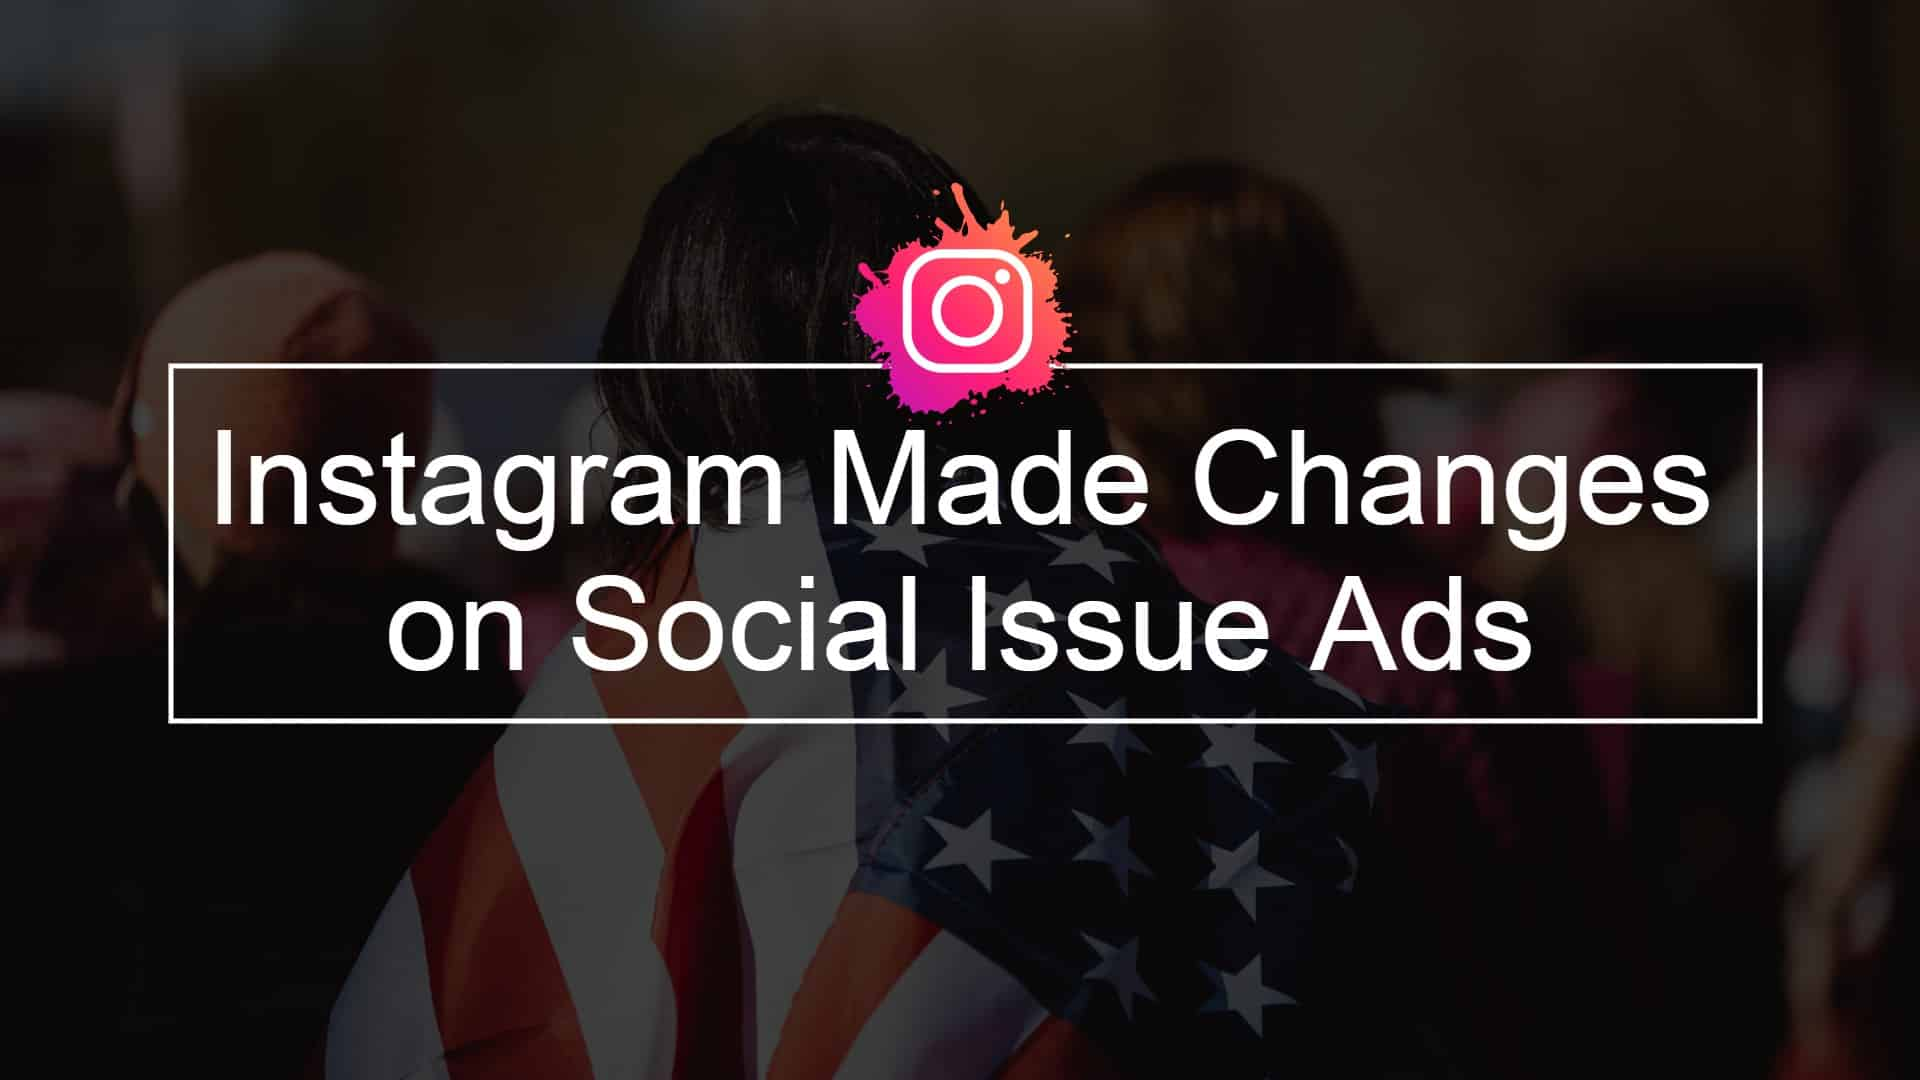 Instagram-Made-Changes-on-Social-Issue-Ads.jpg